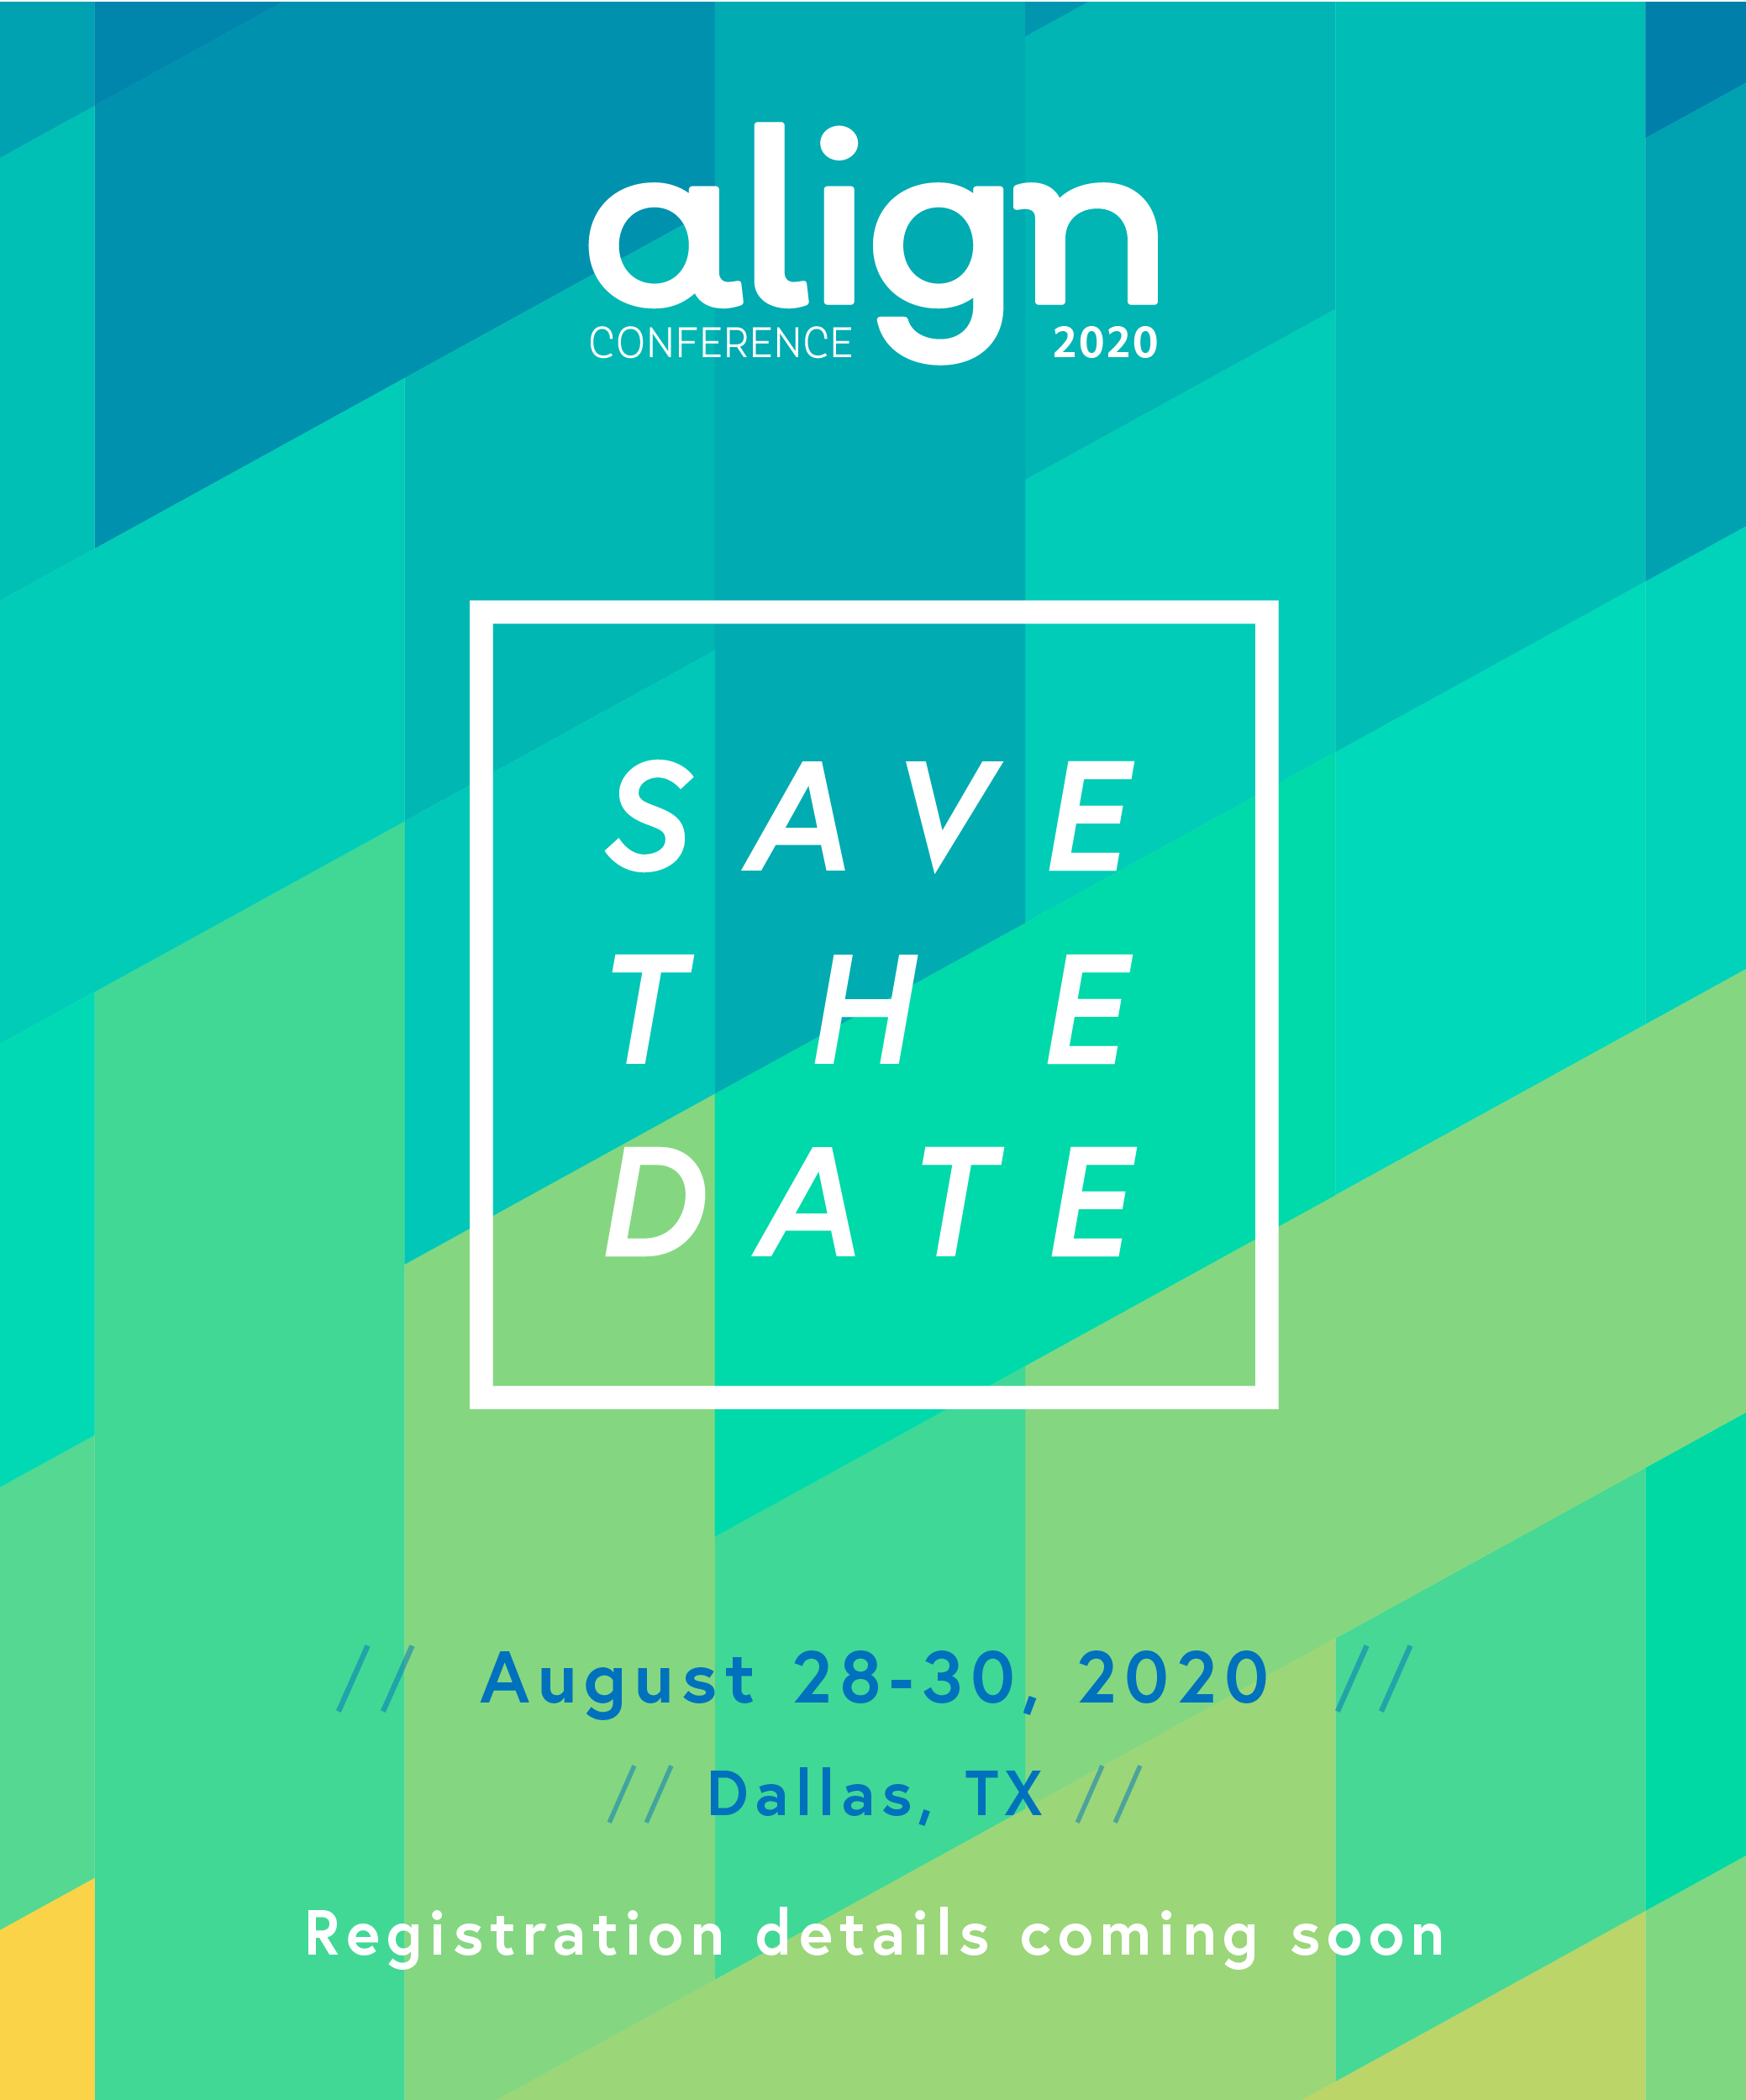 Align Save the Date